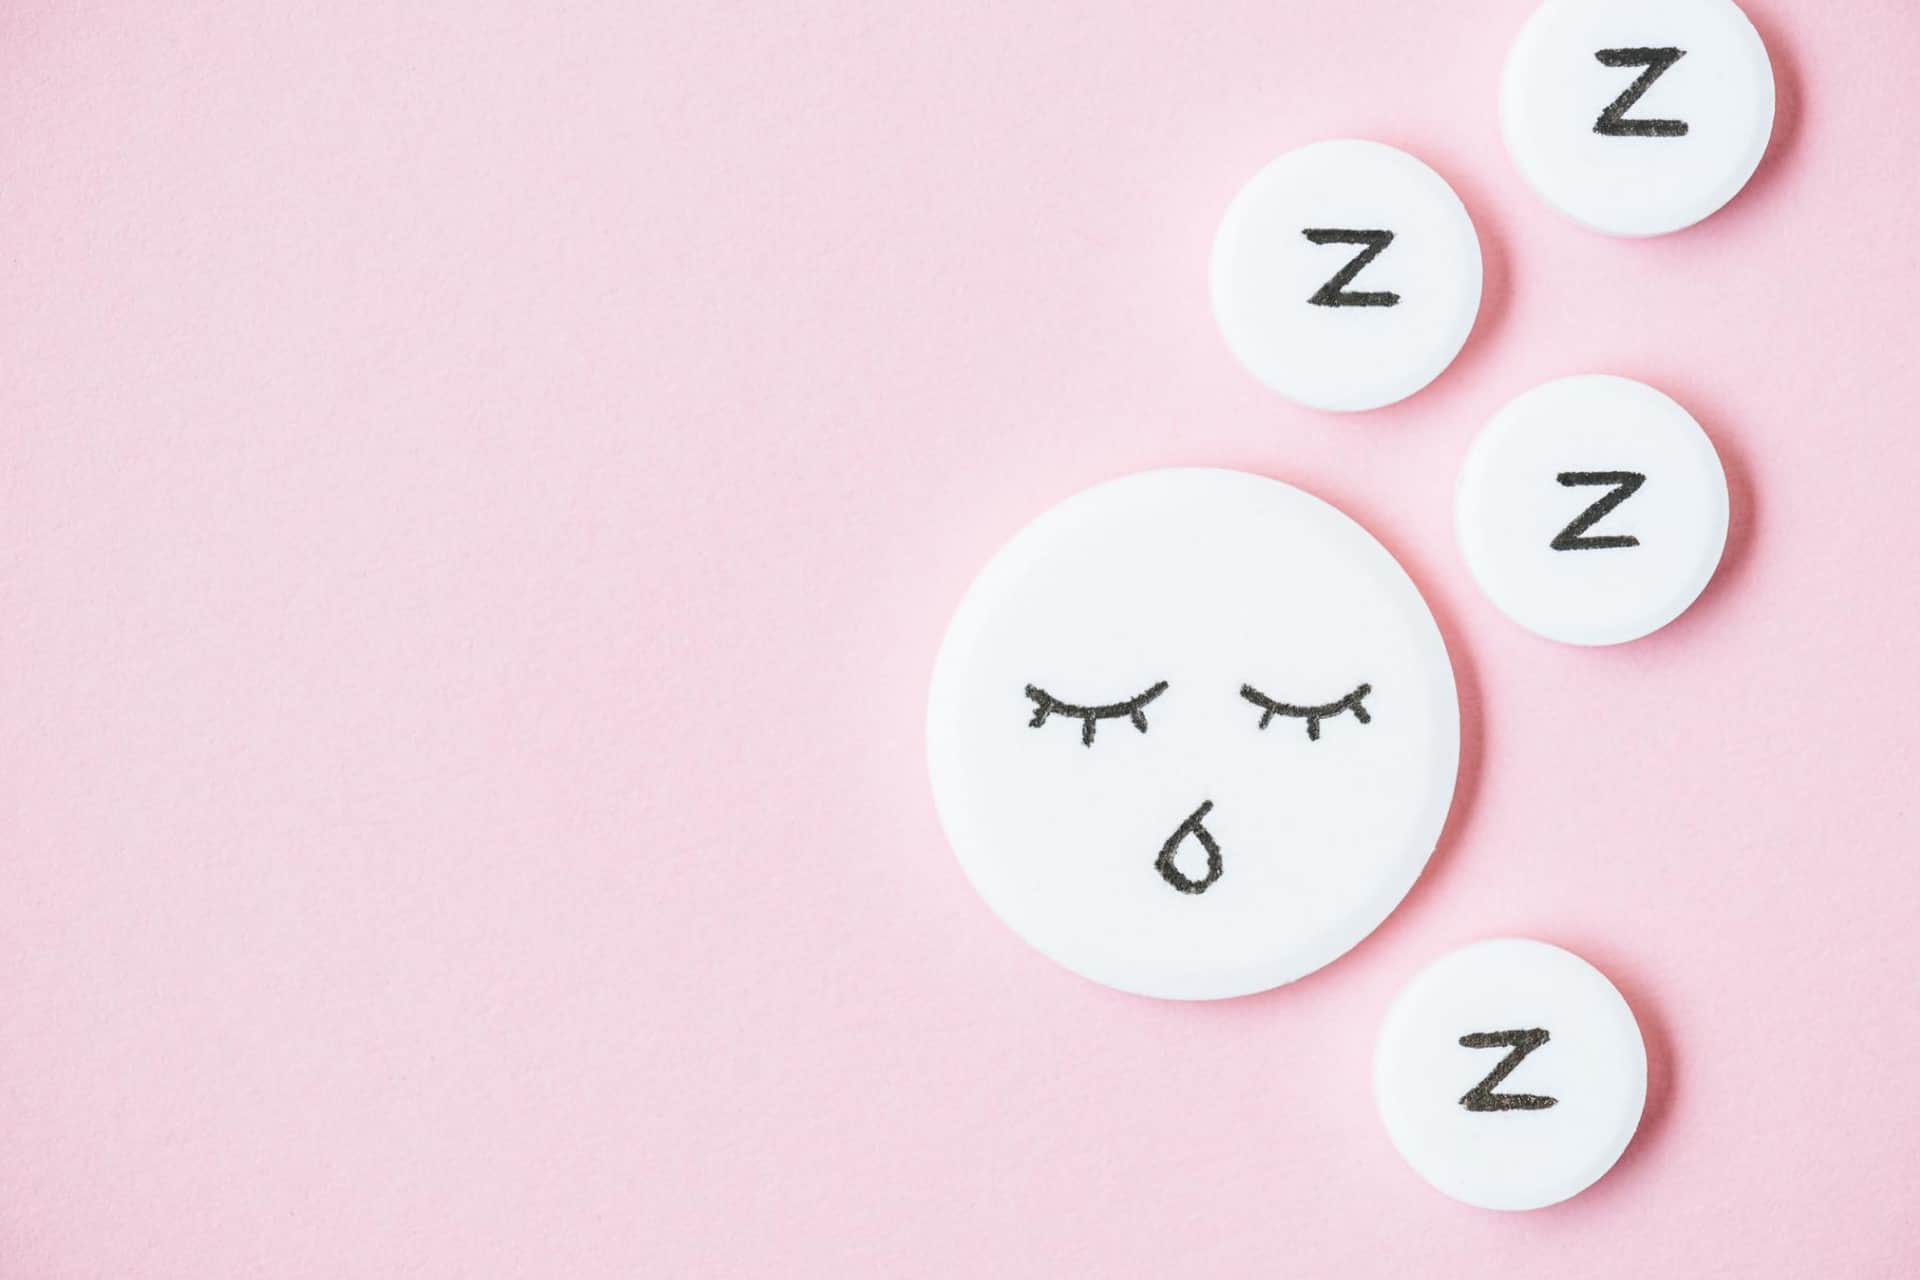 Sleeping pills with Zzzs written on them are shown against a pink background.